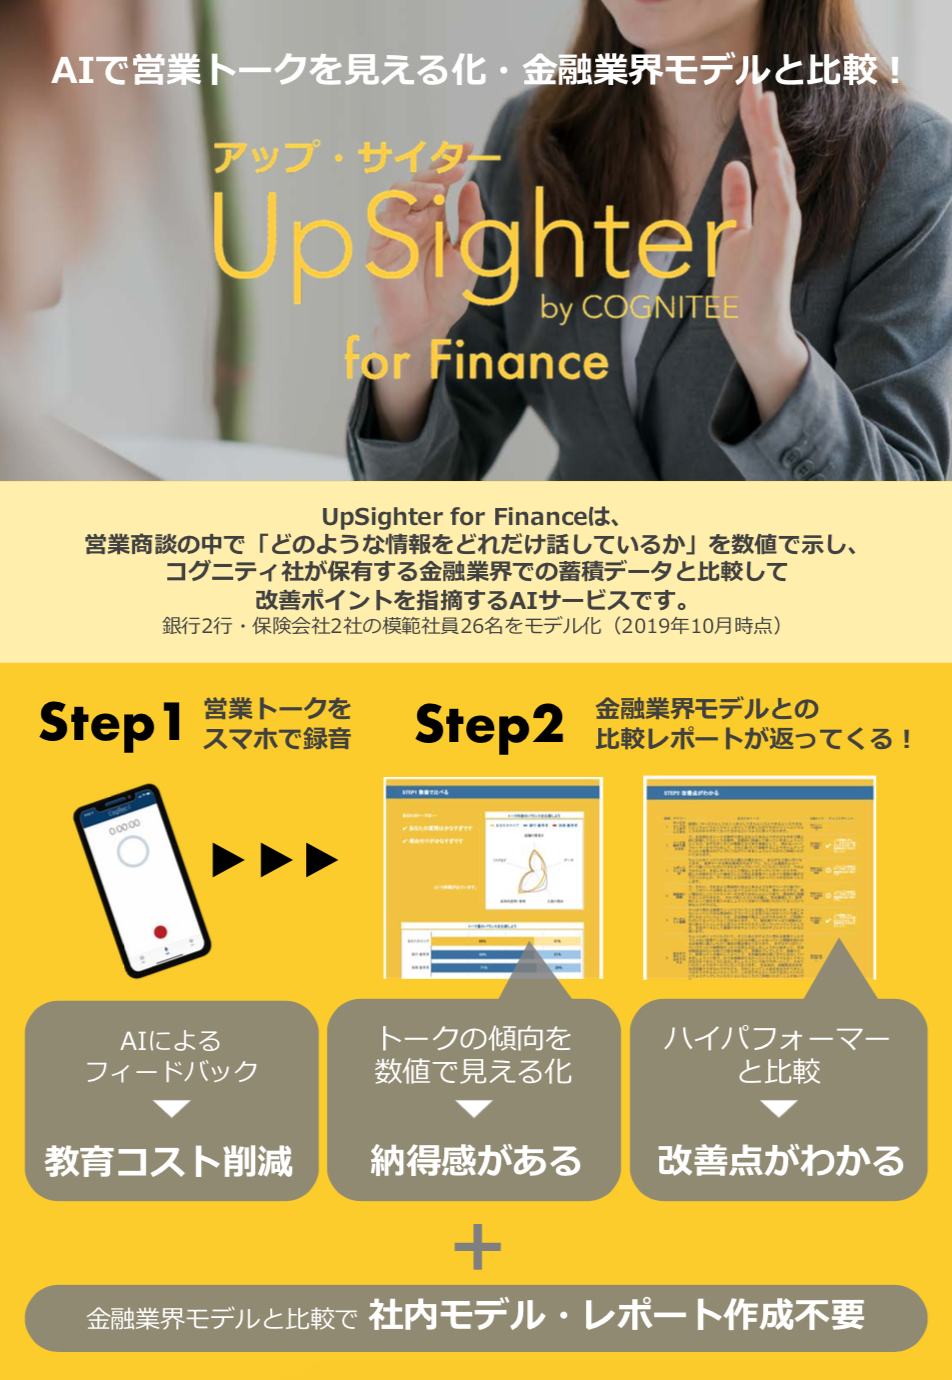 UpSighter for Finance 概要説明資料